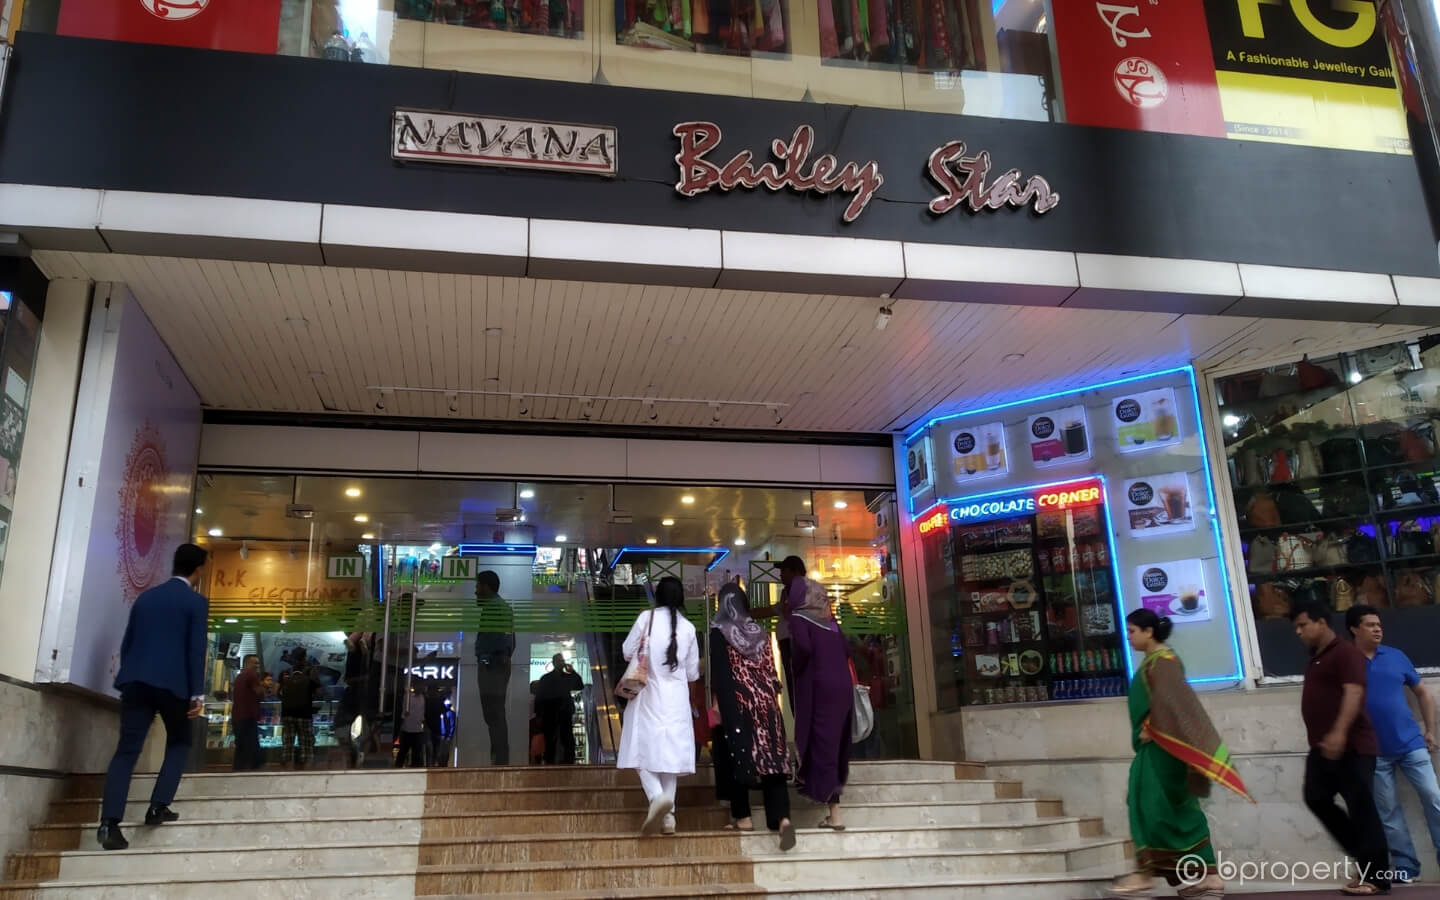 Residents of South Dhaka prefer Bailey Road as the place to find warm clothes